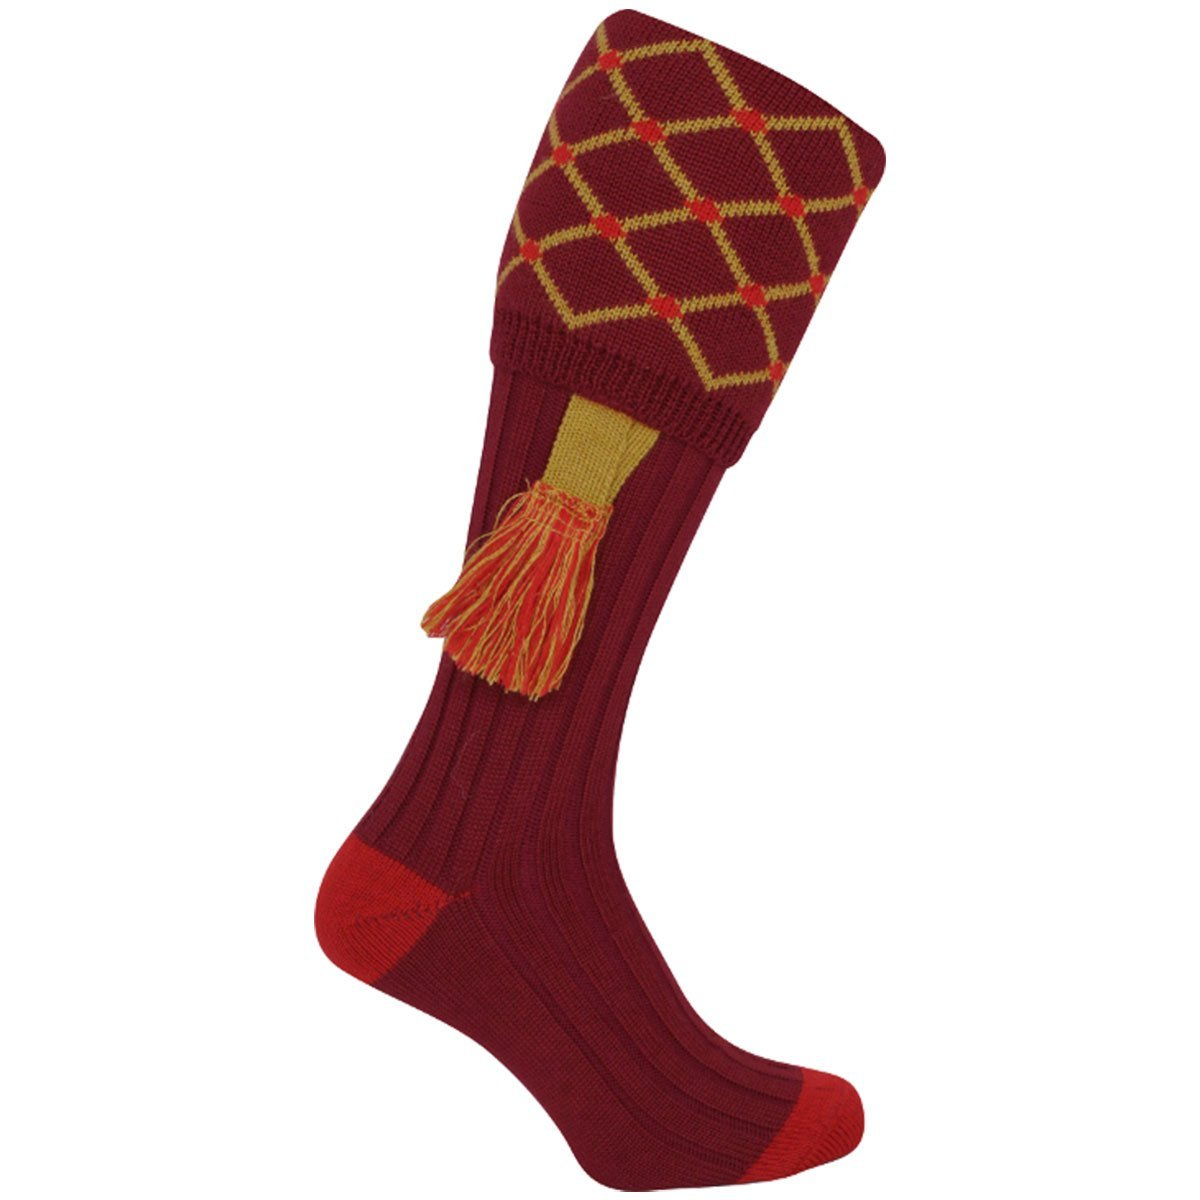 Jack Pyke Diamond Shooting Socks Burgundy | UKMC Pro